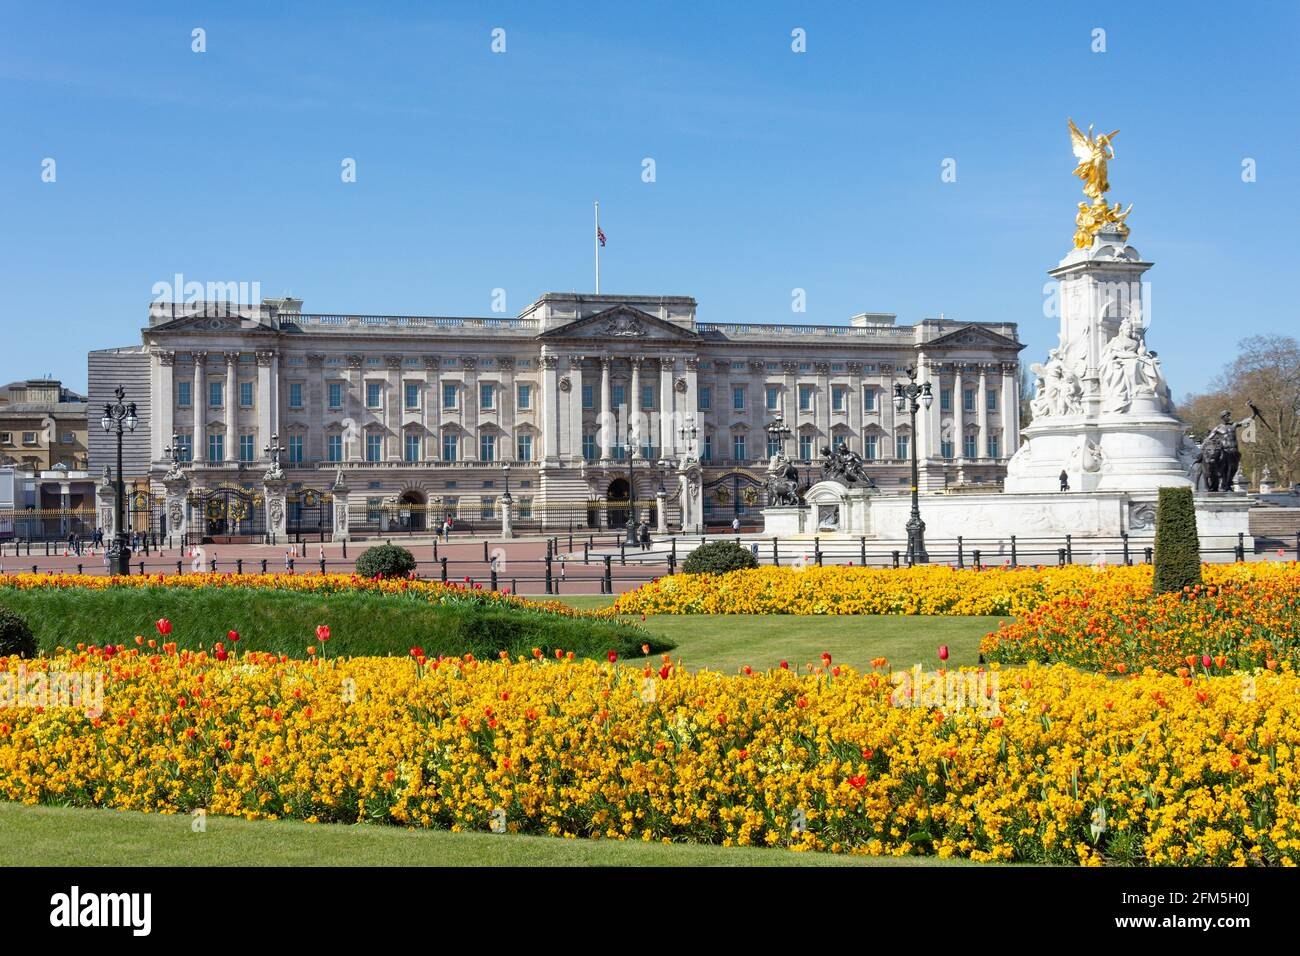 Buckingham Palace from Buckingham Palace Memorial Gardens, Westminster, City of Westminster, Greater London, England, United Kingdom Stock Photo